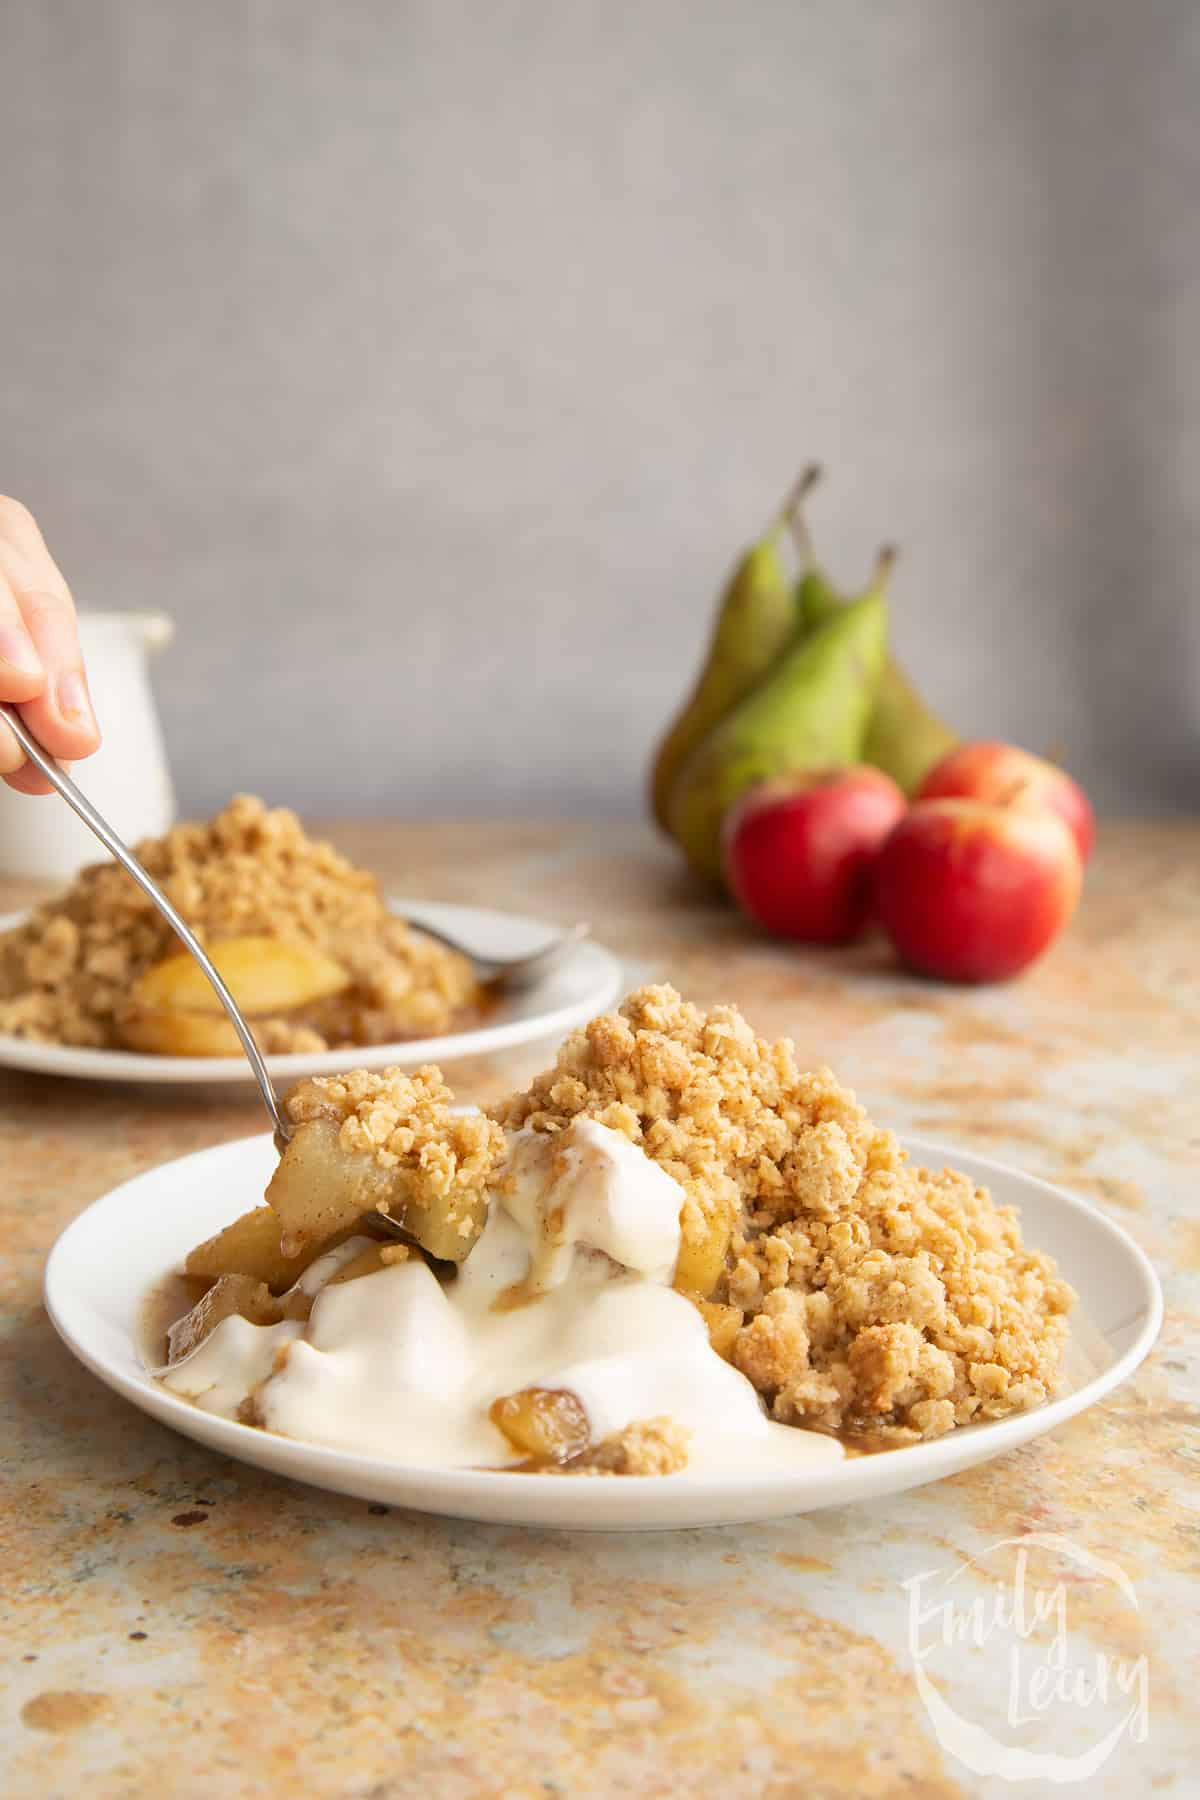 Apple pear crumble and custard served to a small white plate. A hand holds a spoon delving into the crumble.